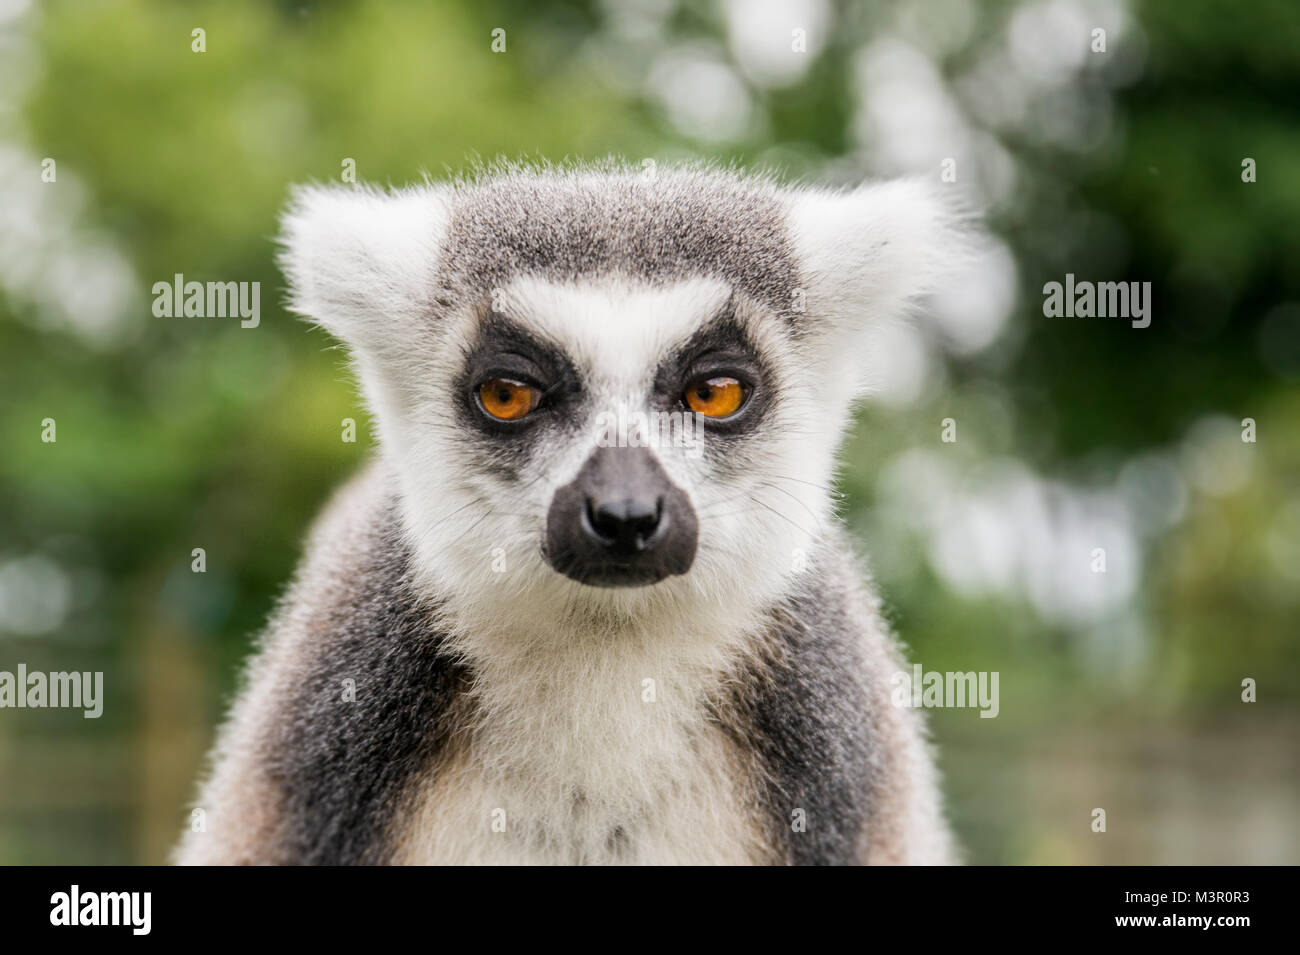 Ring tailed Lemur looking shifty! - Stock Image